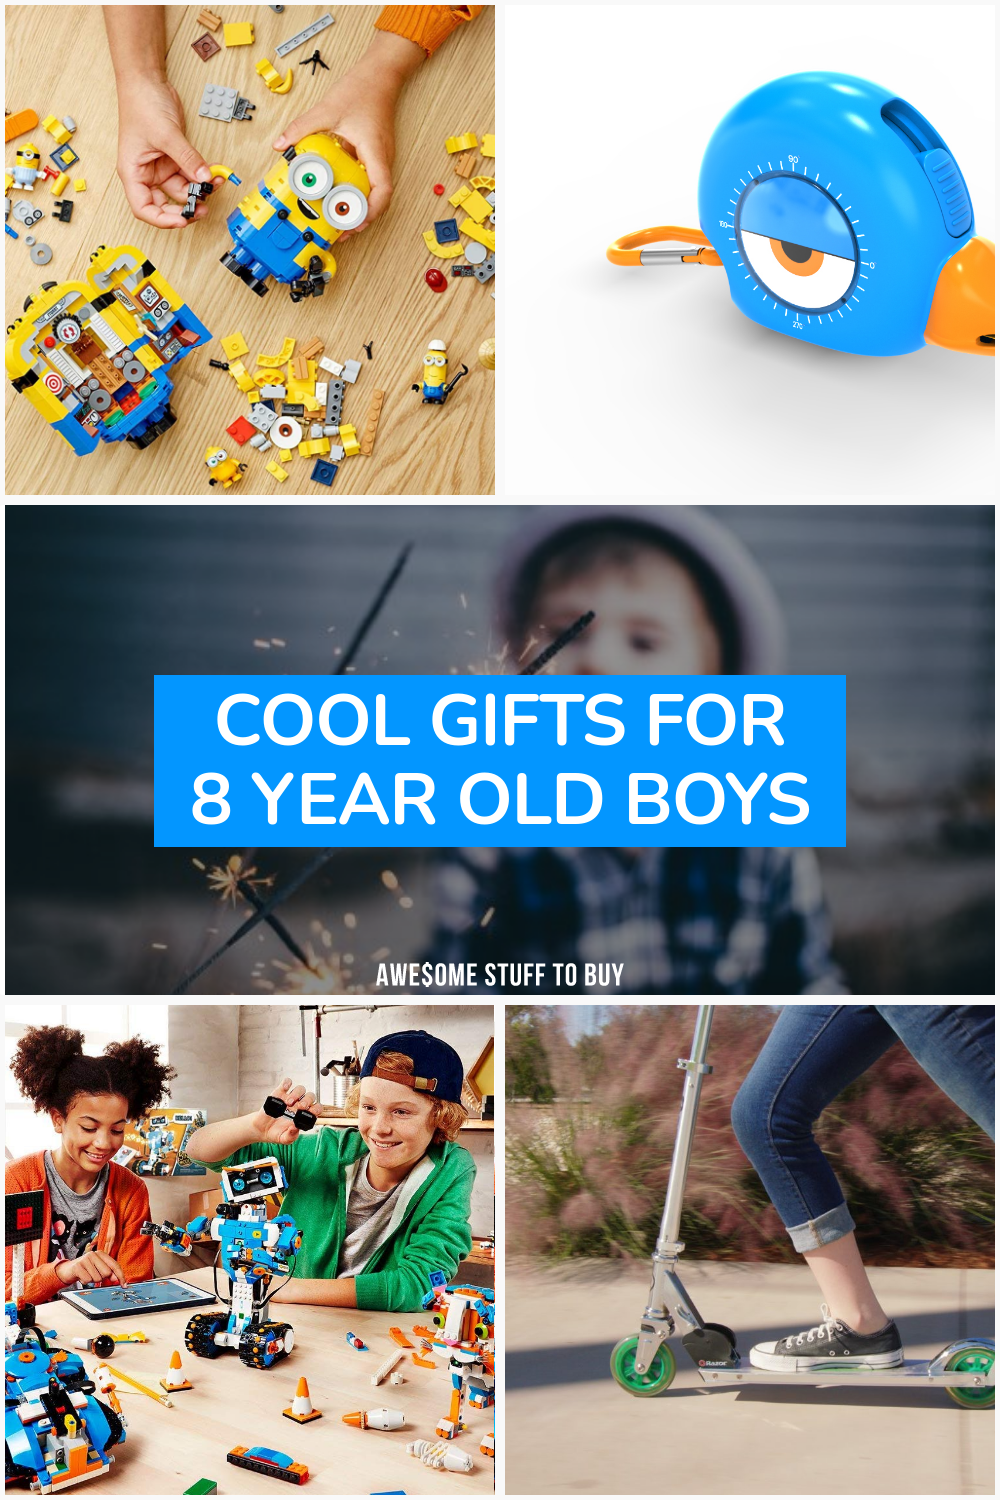 Cool Gifts for 8 Year Old Boys // Awesome Stuff to Buy